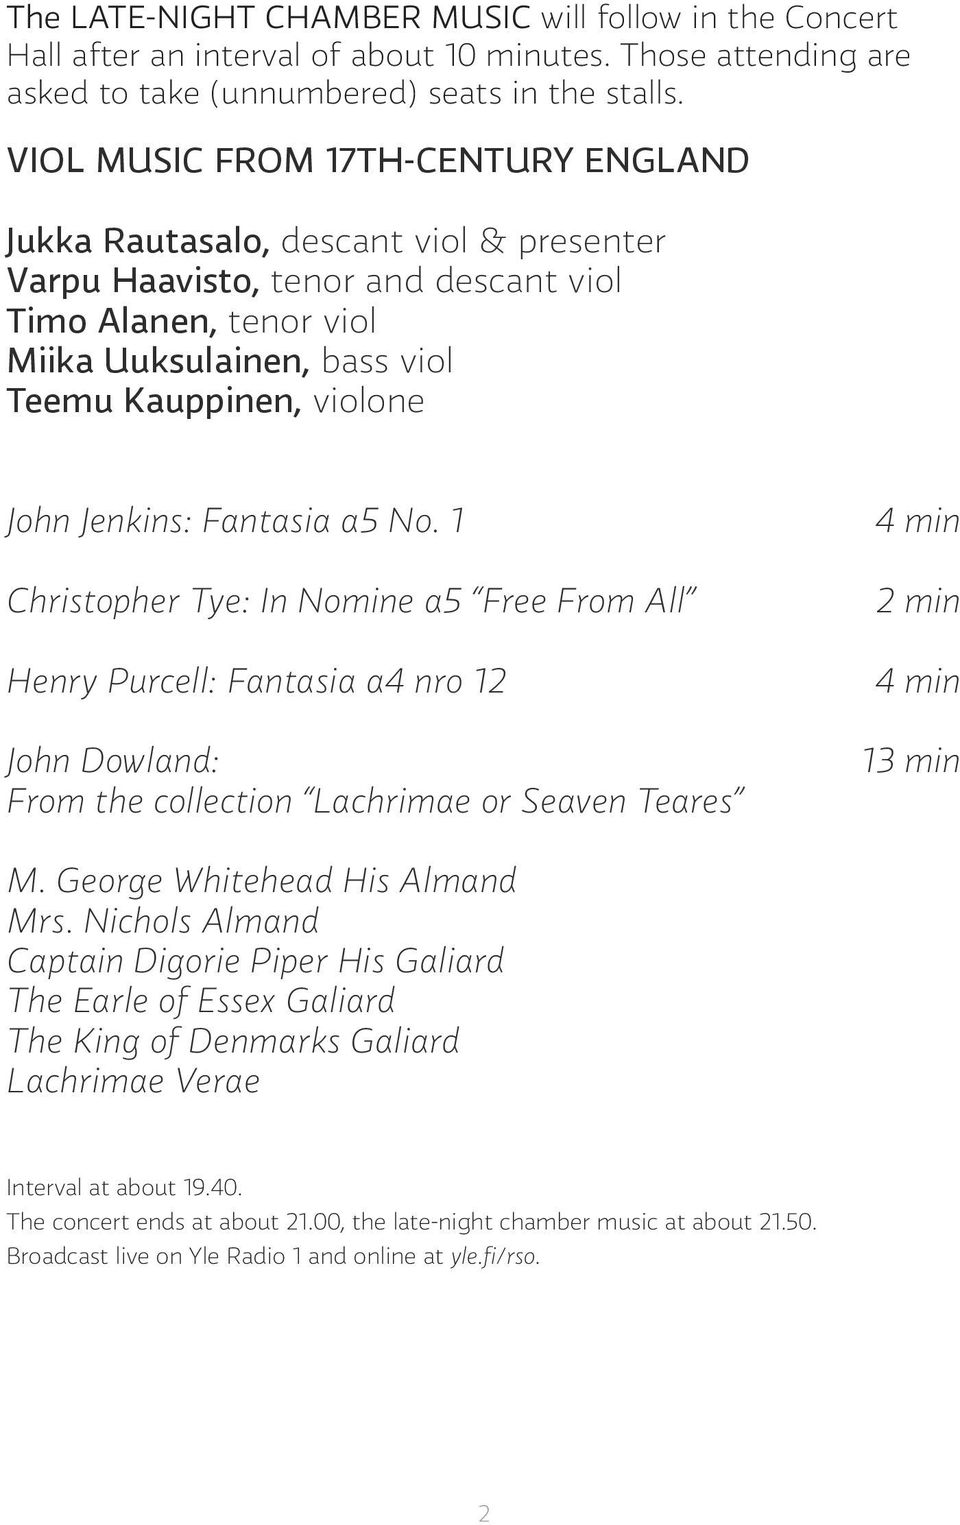 John Jenkins: Fantasia a5 No. 1 Christopher Tye: In Nomine a5 Free From All Henry Purcell: Fantasia a4 nro 12 John Dowland: From the collection Lachrimae or Seaven Teares 2 min 13 min M.